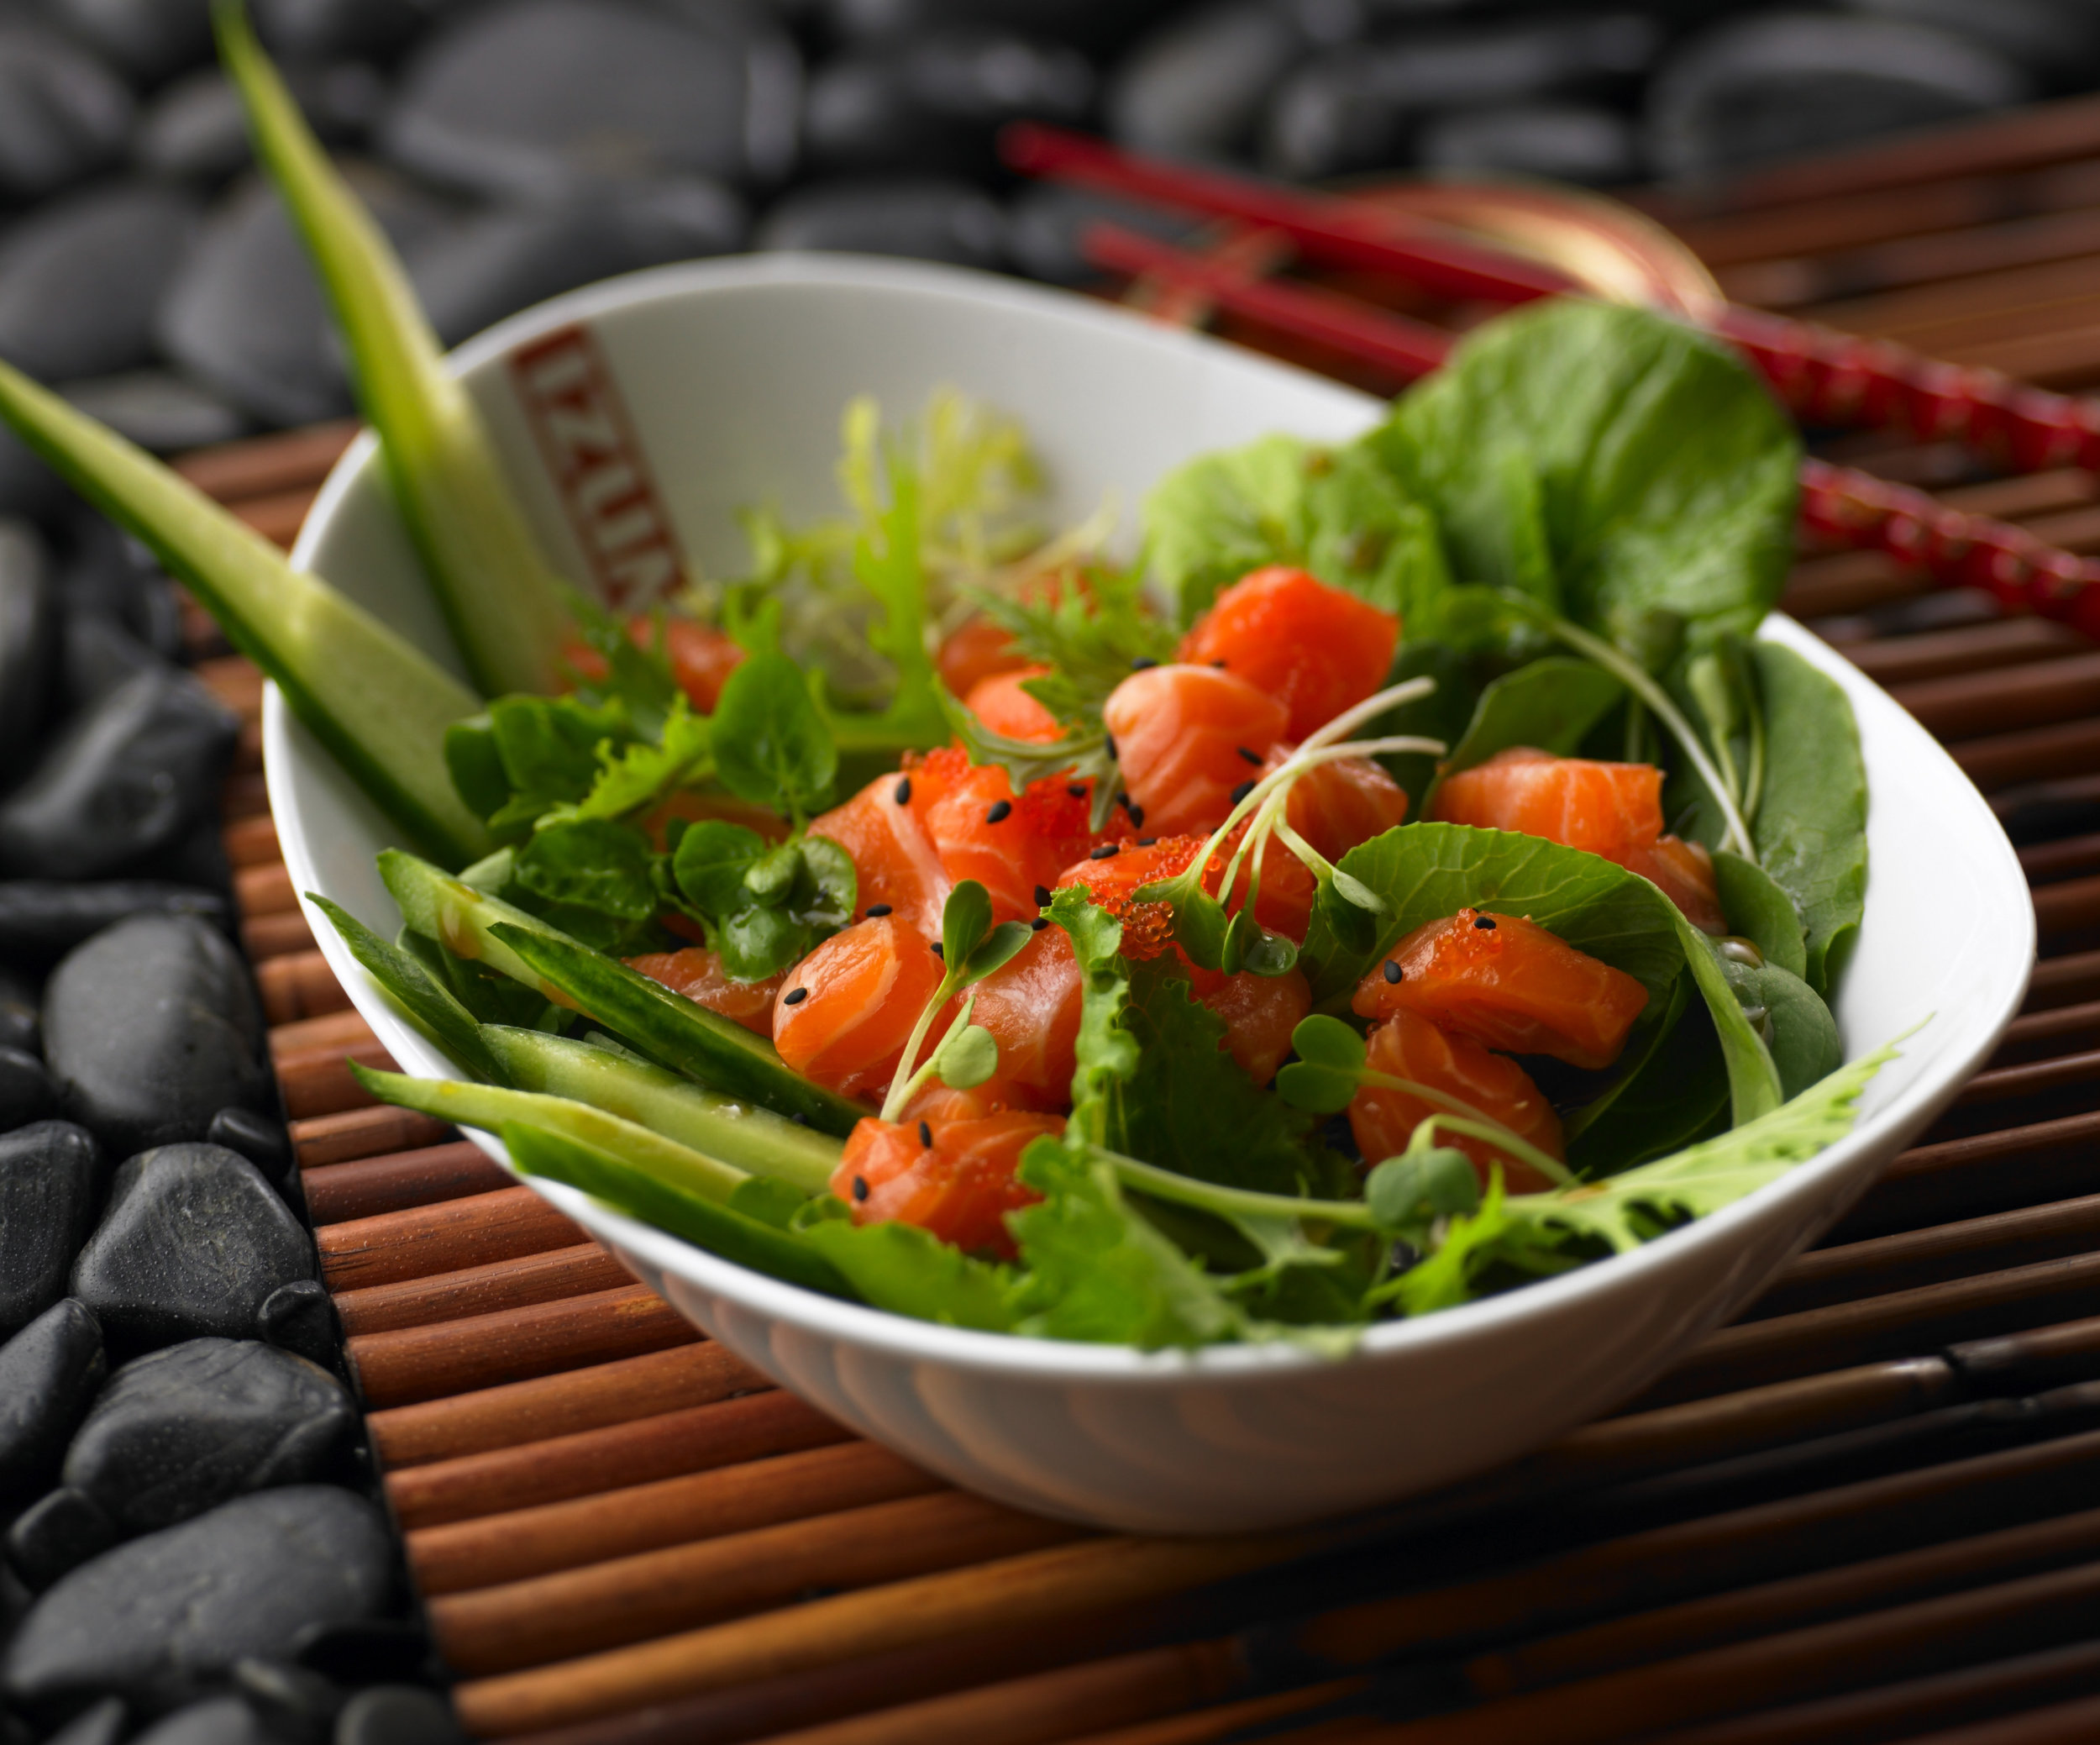 Salmon Salad with Watercress copy.jpg